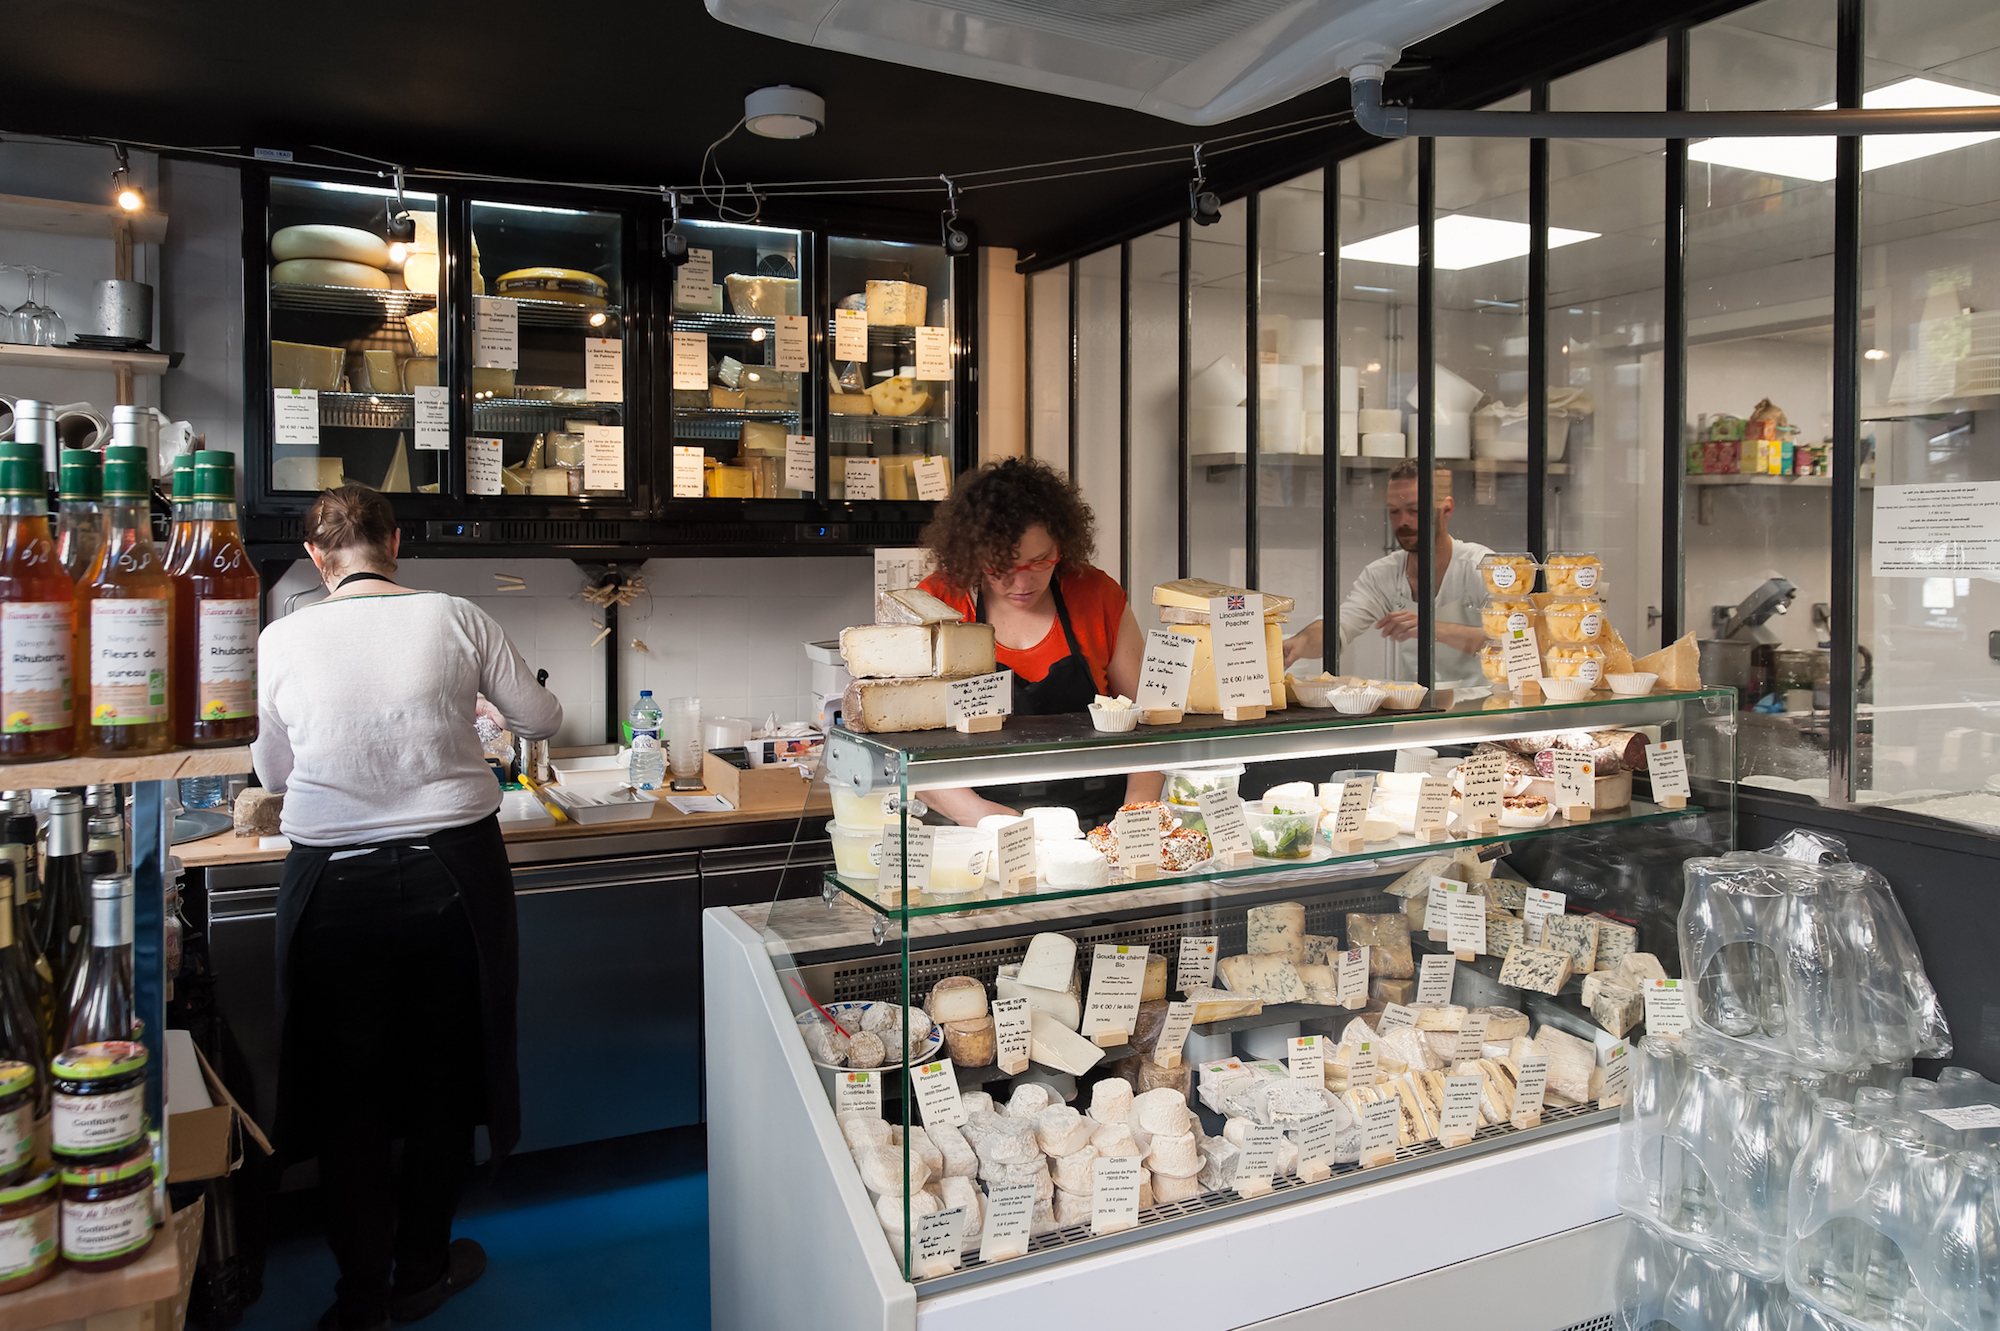 HiP Paris Blog discovers Paris' first cheese dairy La Laiterie de Paris